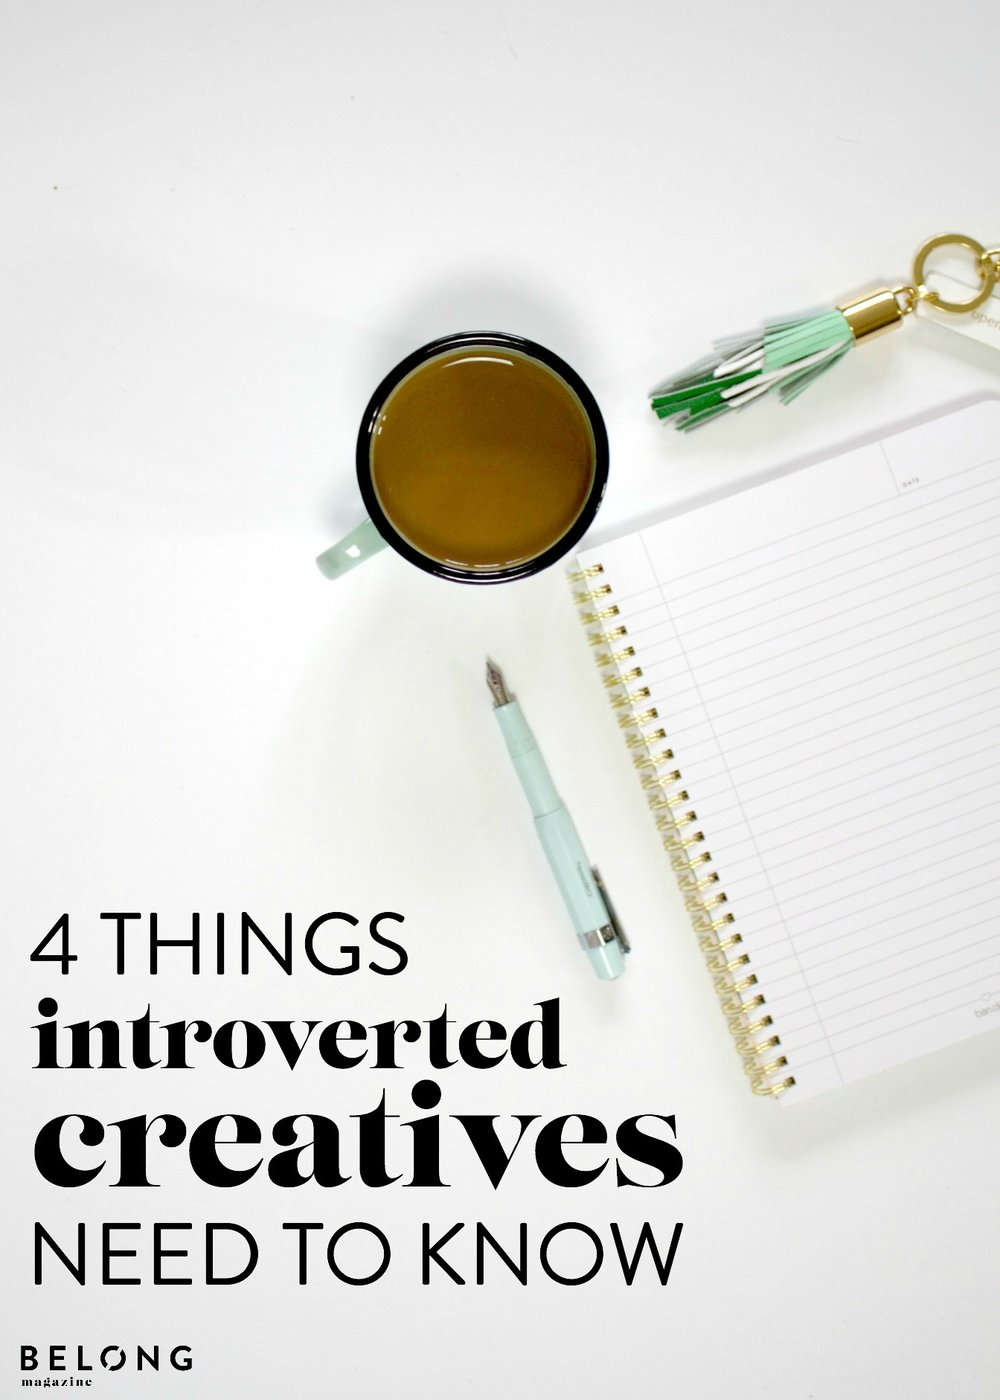 being an introverted creative in an extroverted world - belong magazine blog - female entrepreneurs, lady boss, women in business